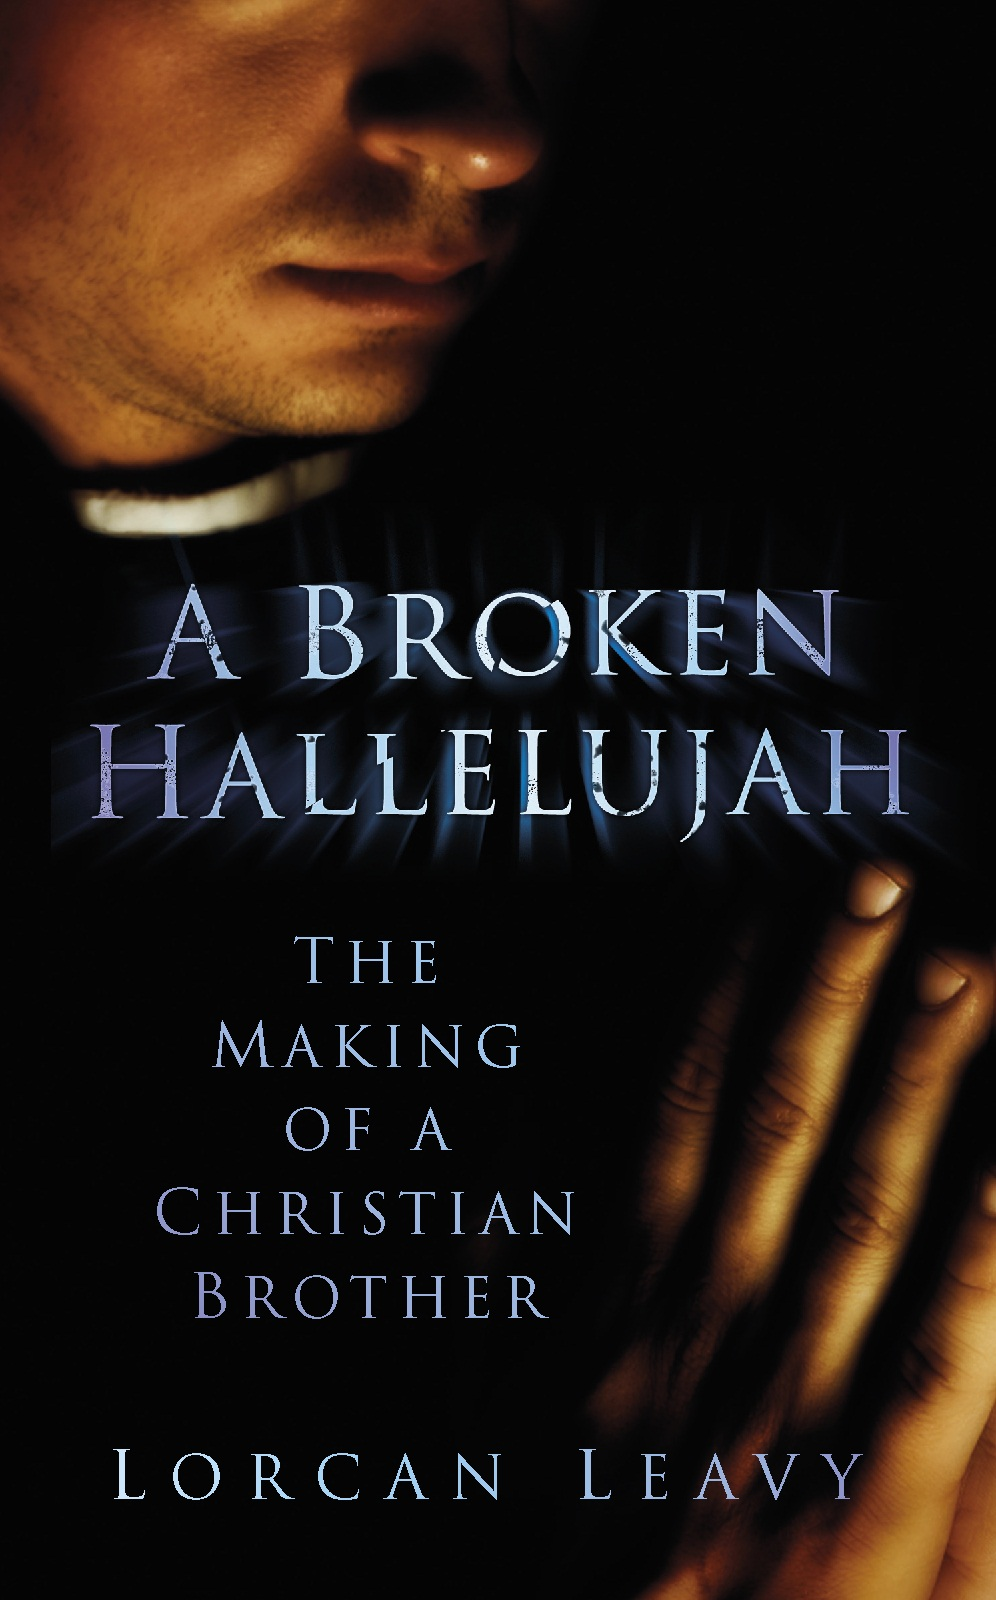 The making of a christian